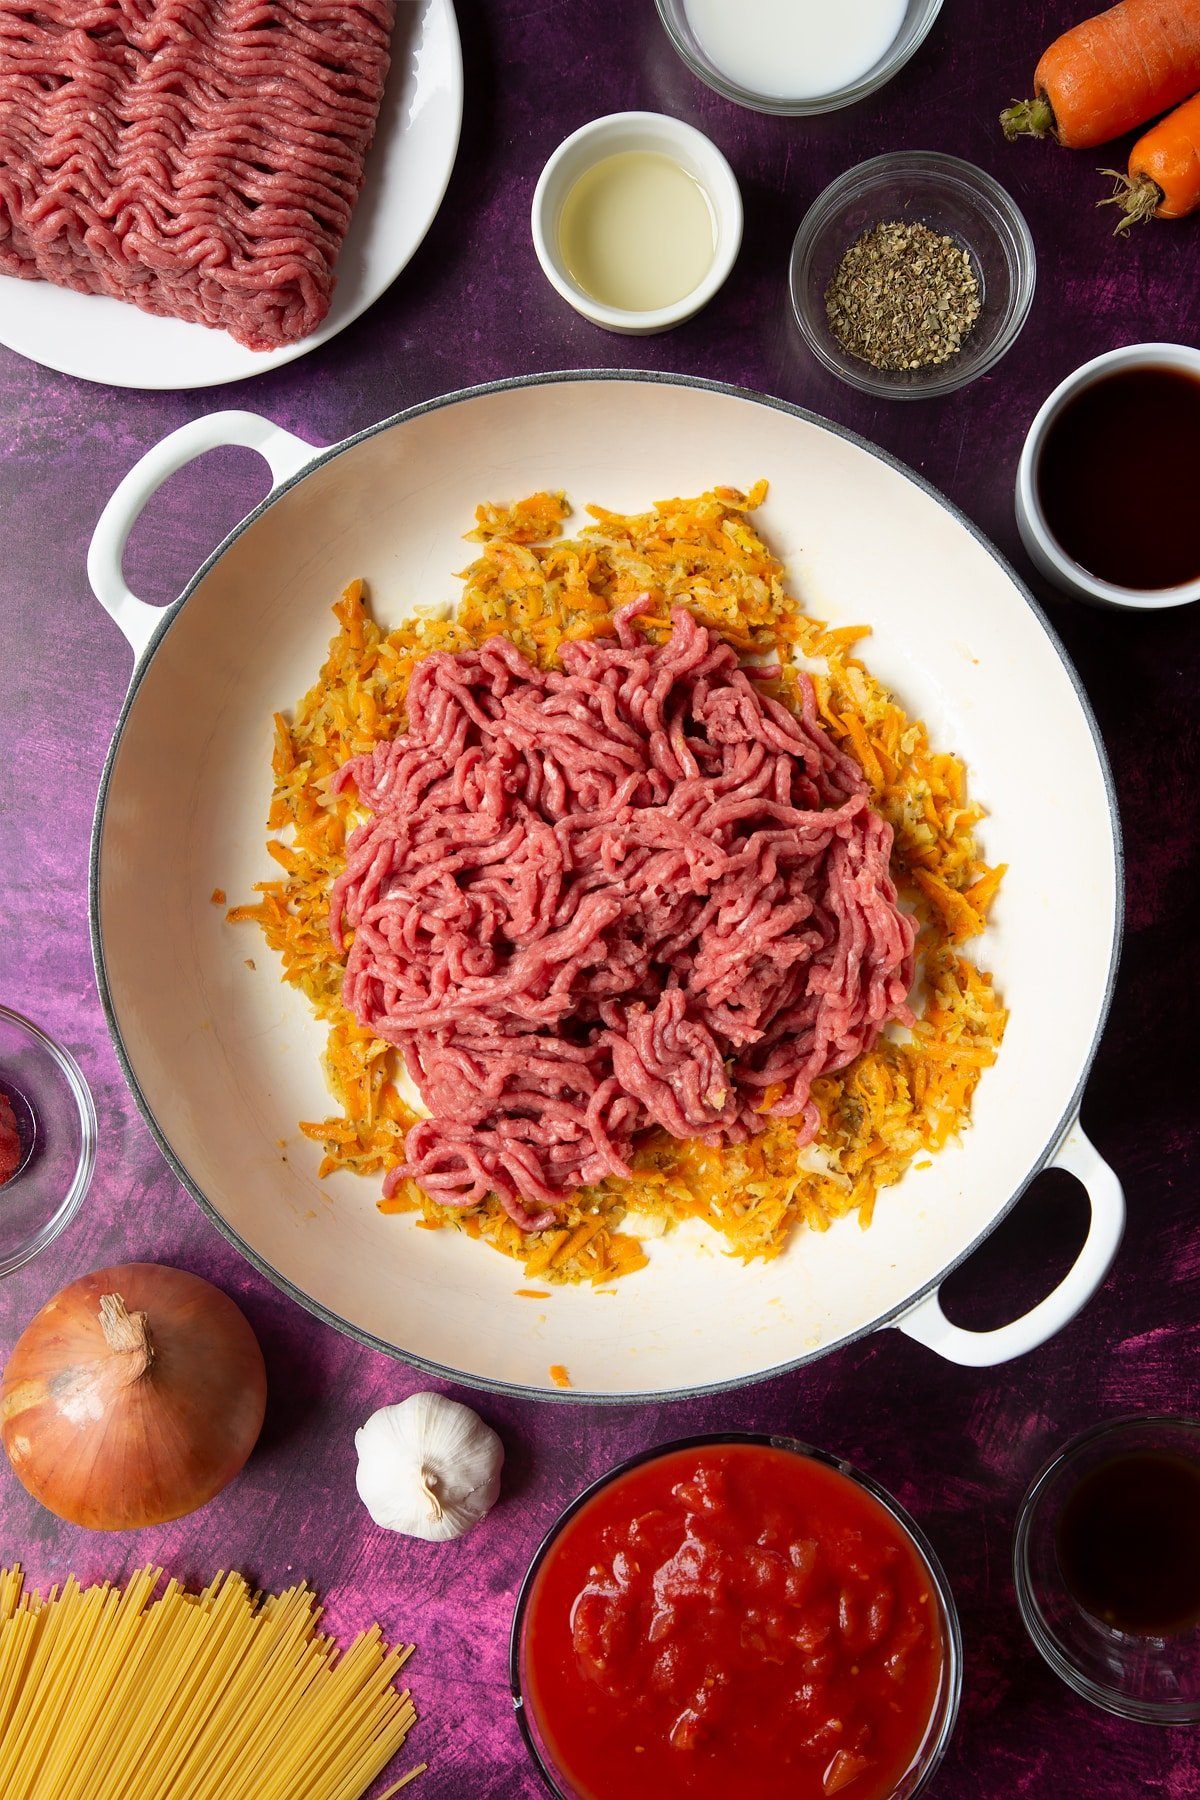 A large frying pan with fried carrot, onion, garlic and dried oregano. Raw lean beef mince has been added. Ingredients to make spaghetti bolognese Gordon Ramsay style surround the pan.